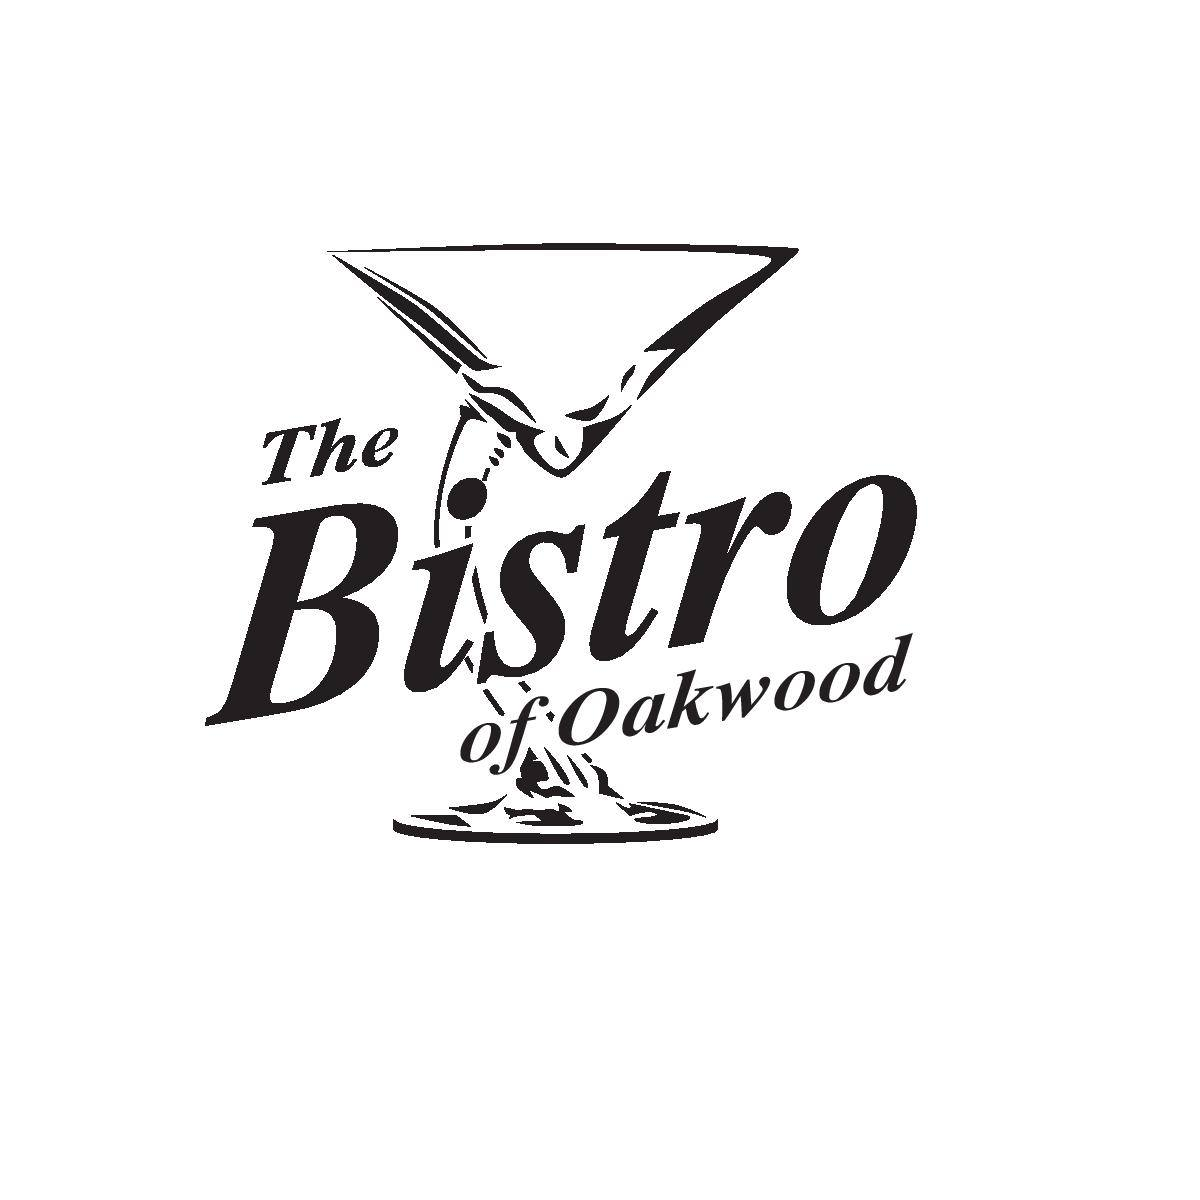 The Bistro Of Oakwood restaurant located in CANTON, OH